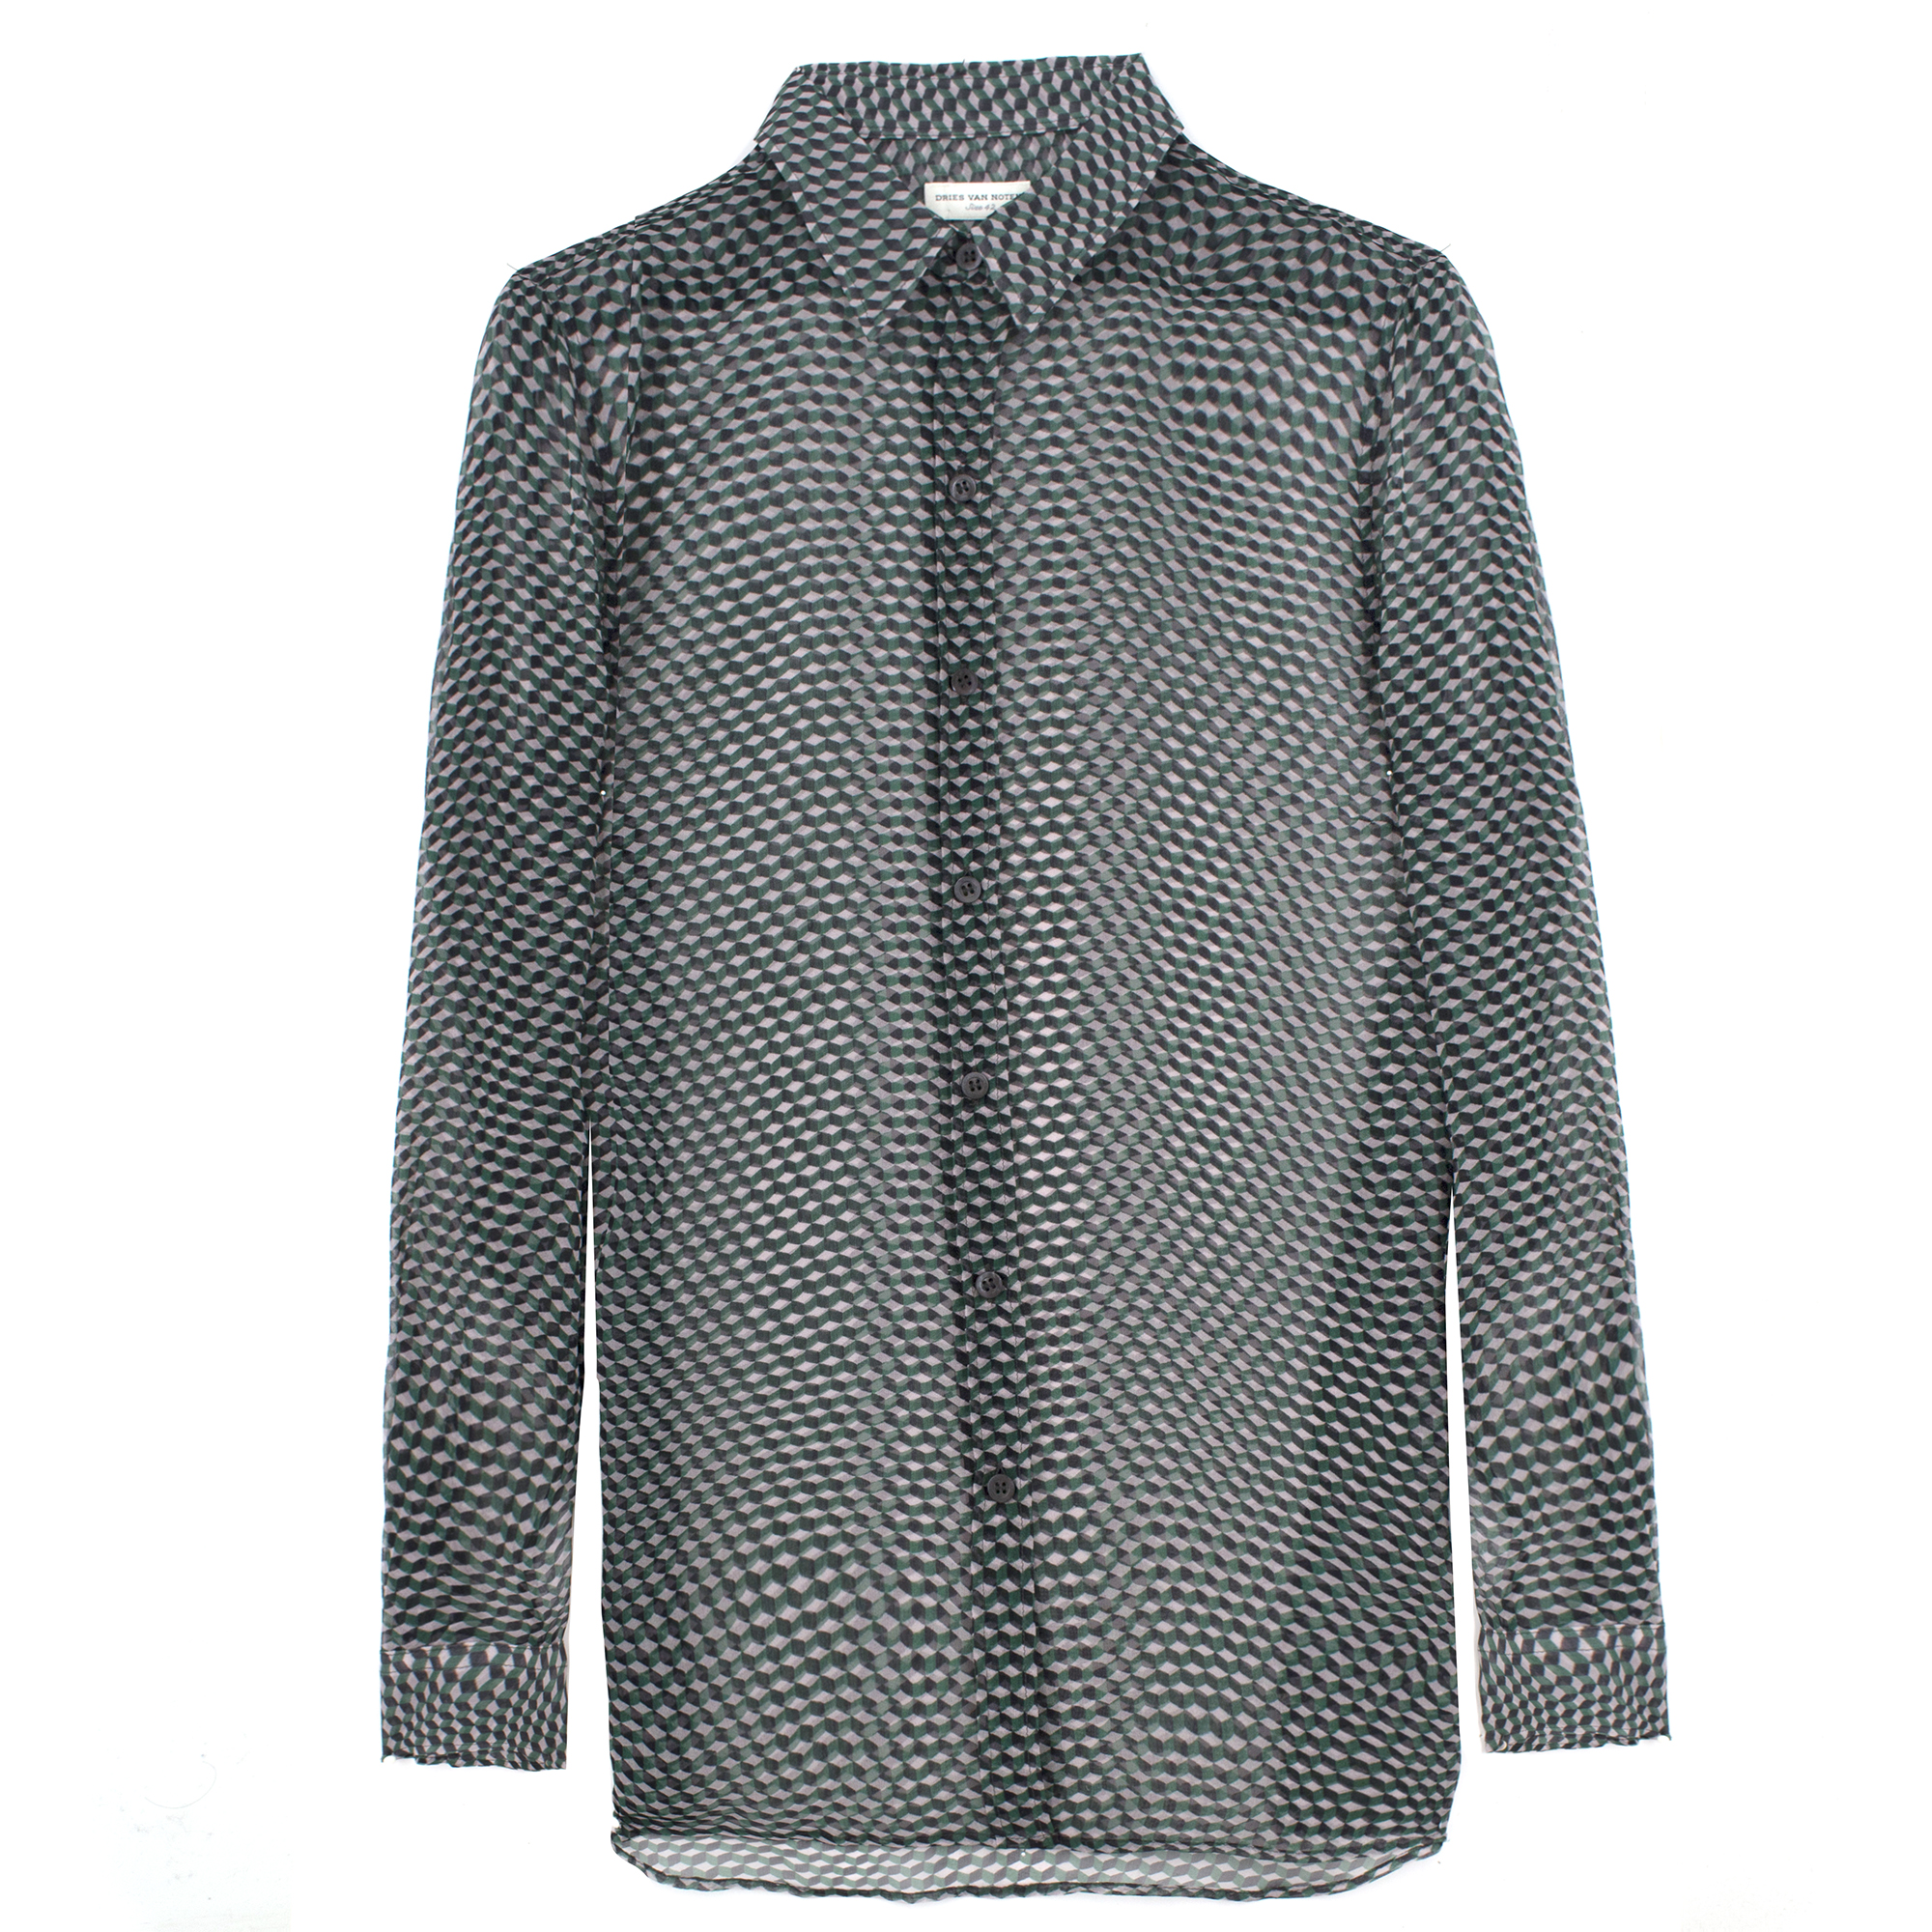 Dries Van Noten green geometric-print sheer silk shirt